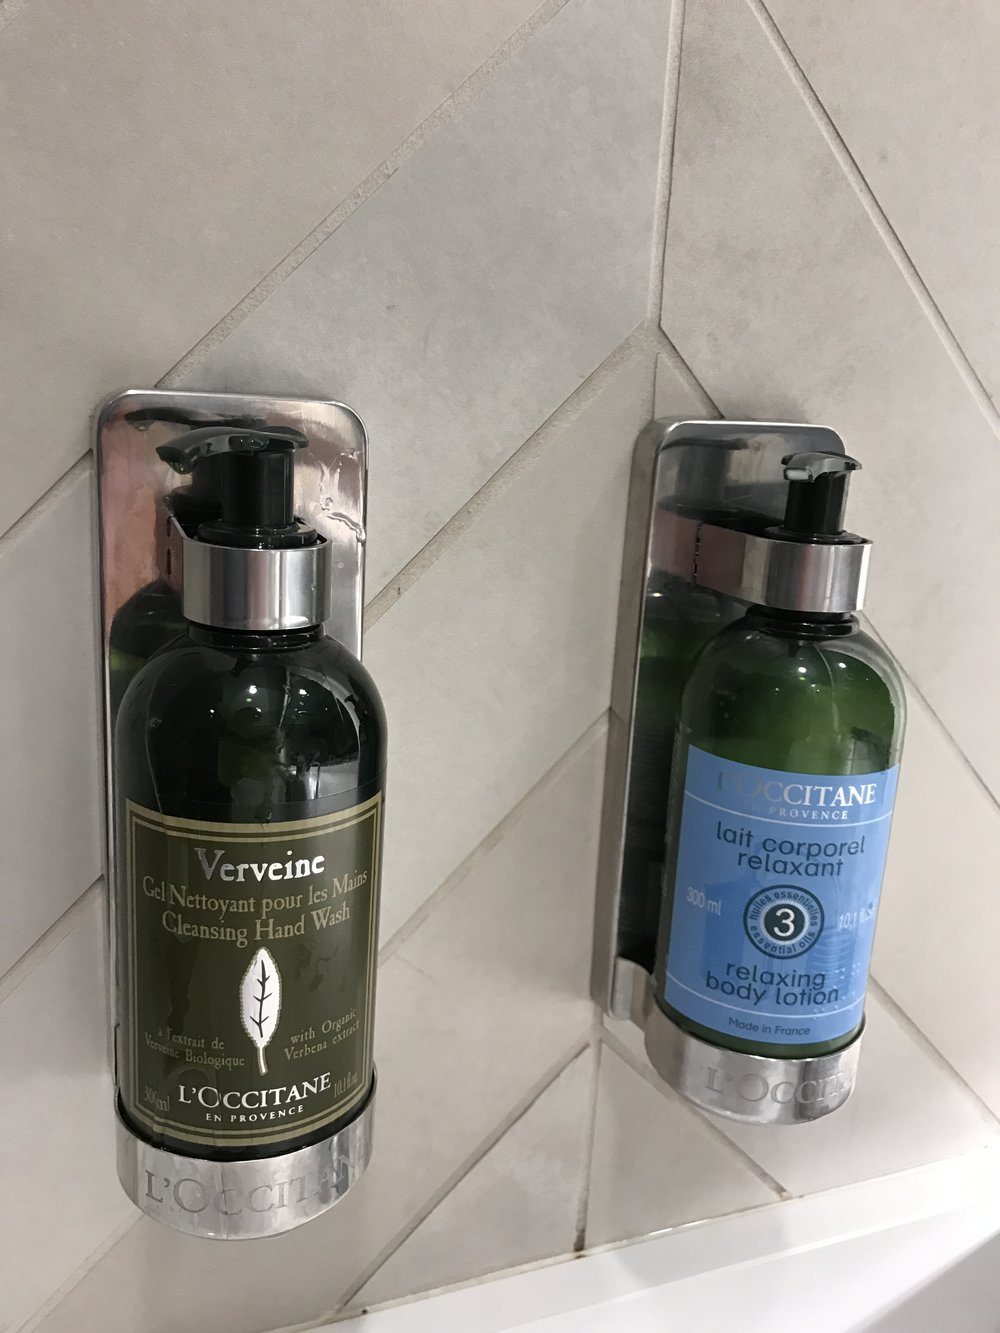 L'Occitane En Provence toiletries